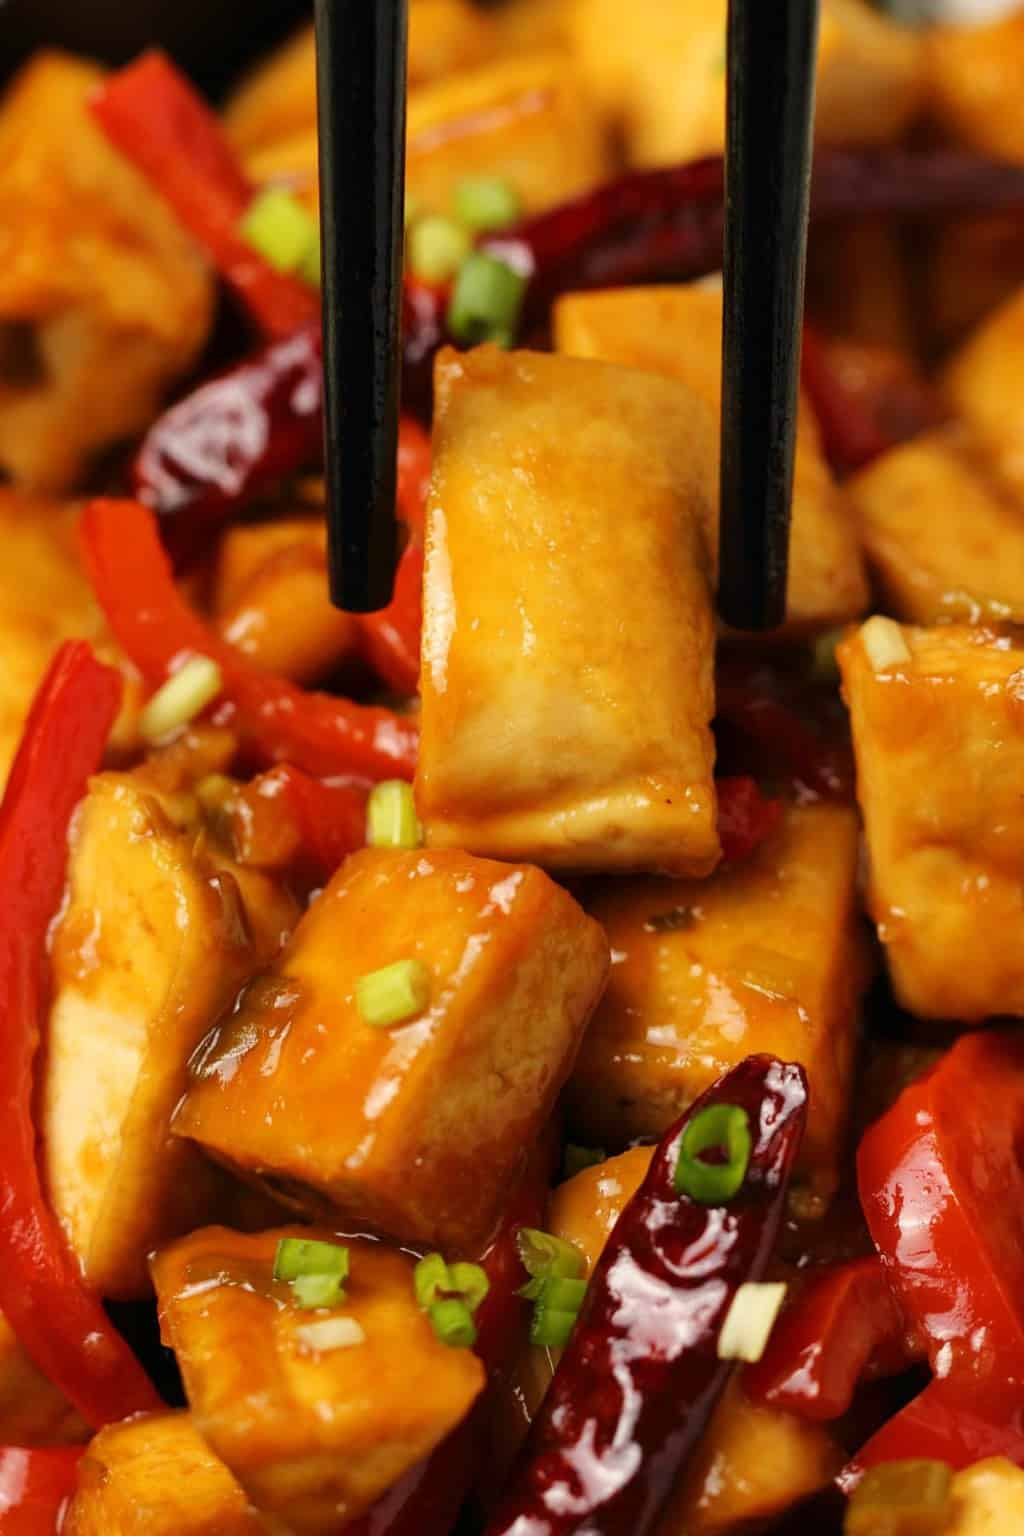 Kung pao tofu and chopsticks.